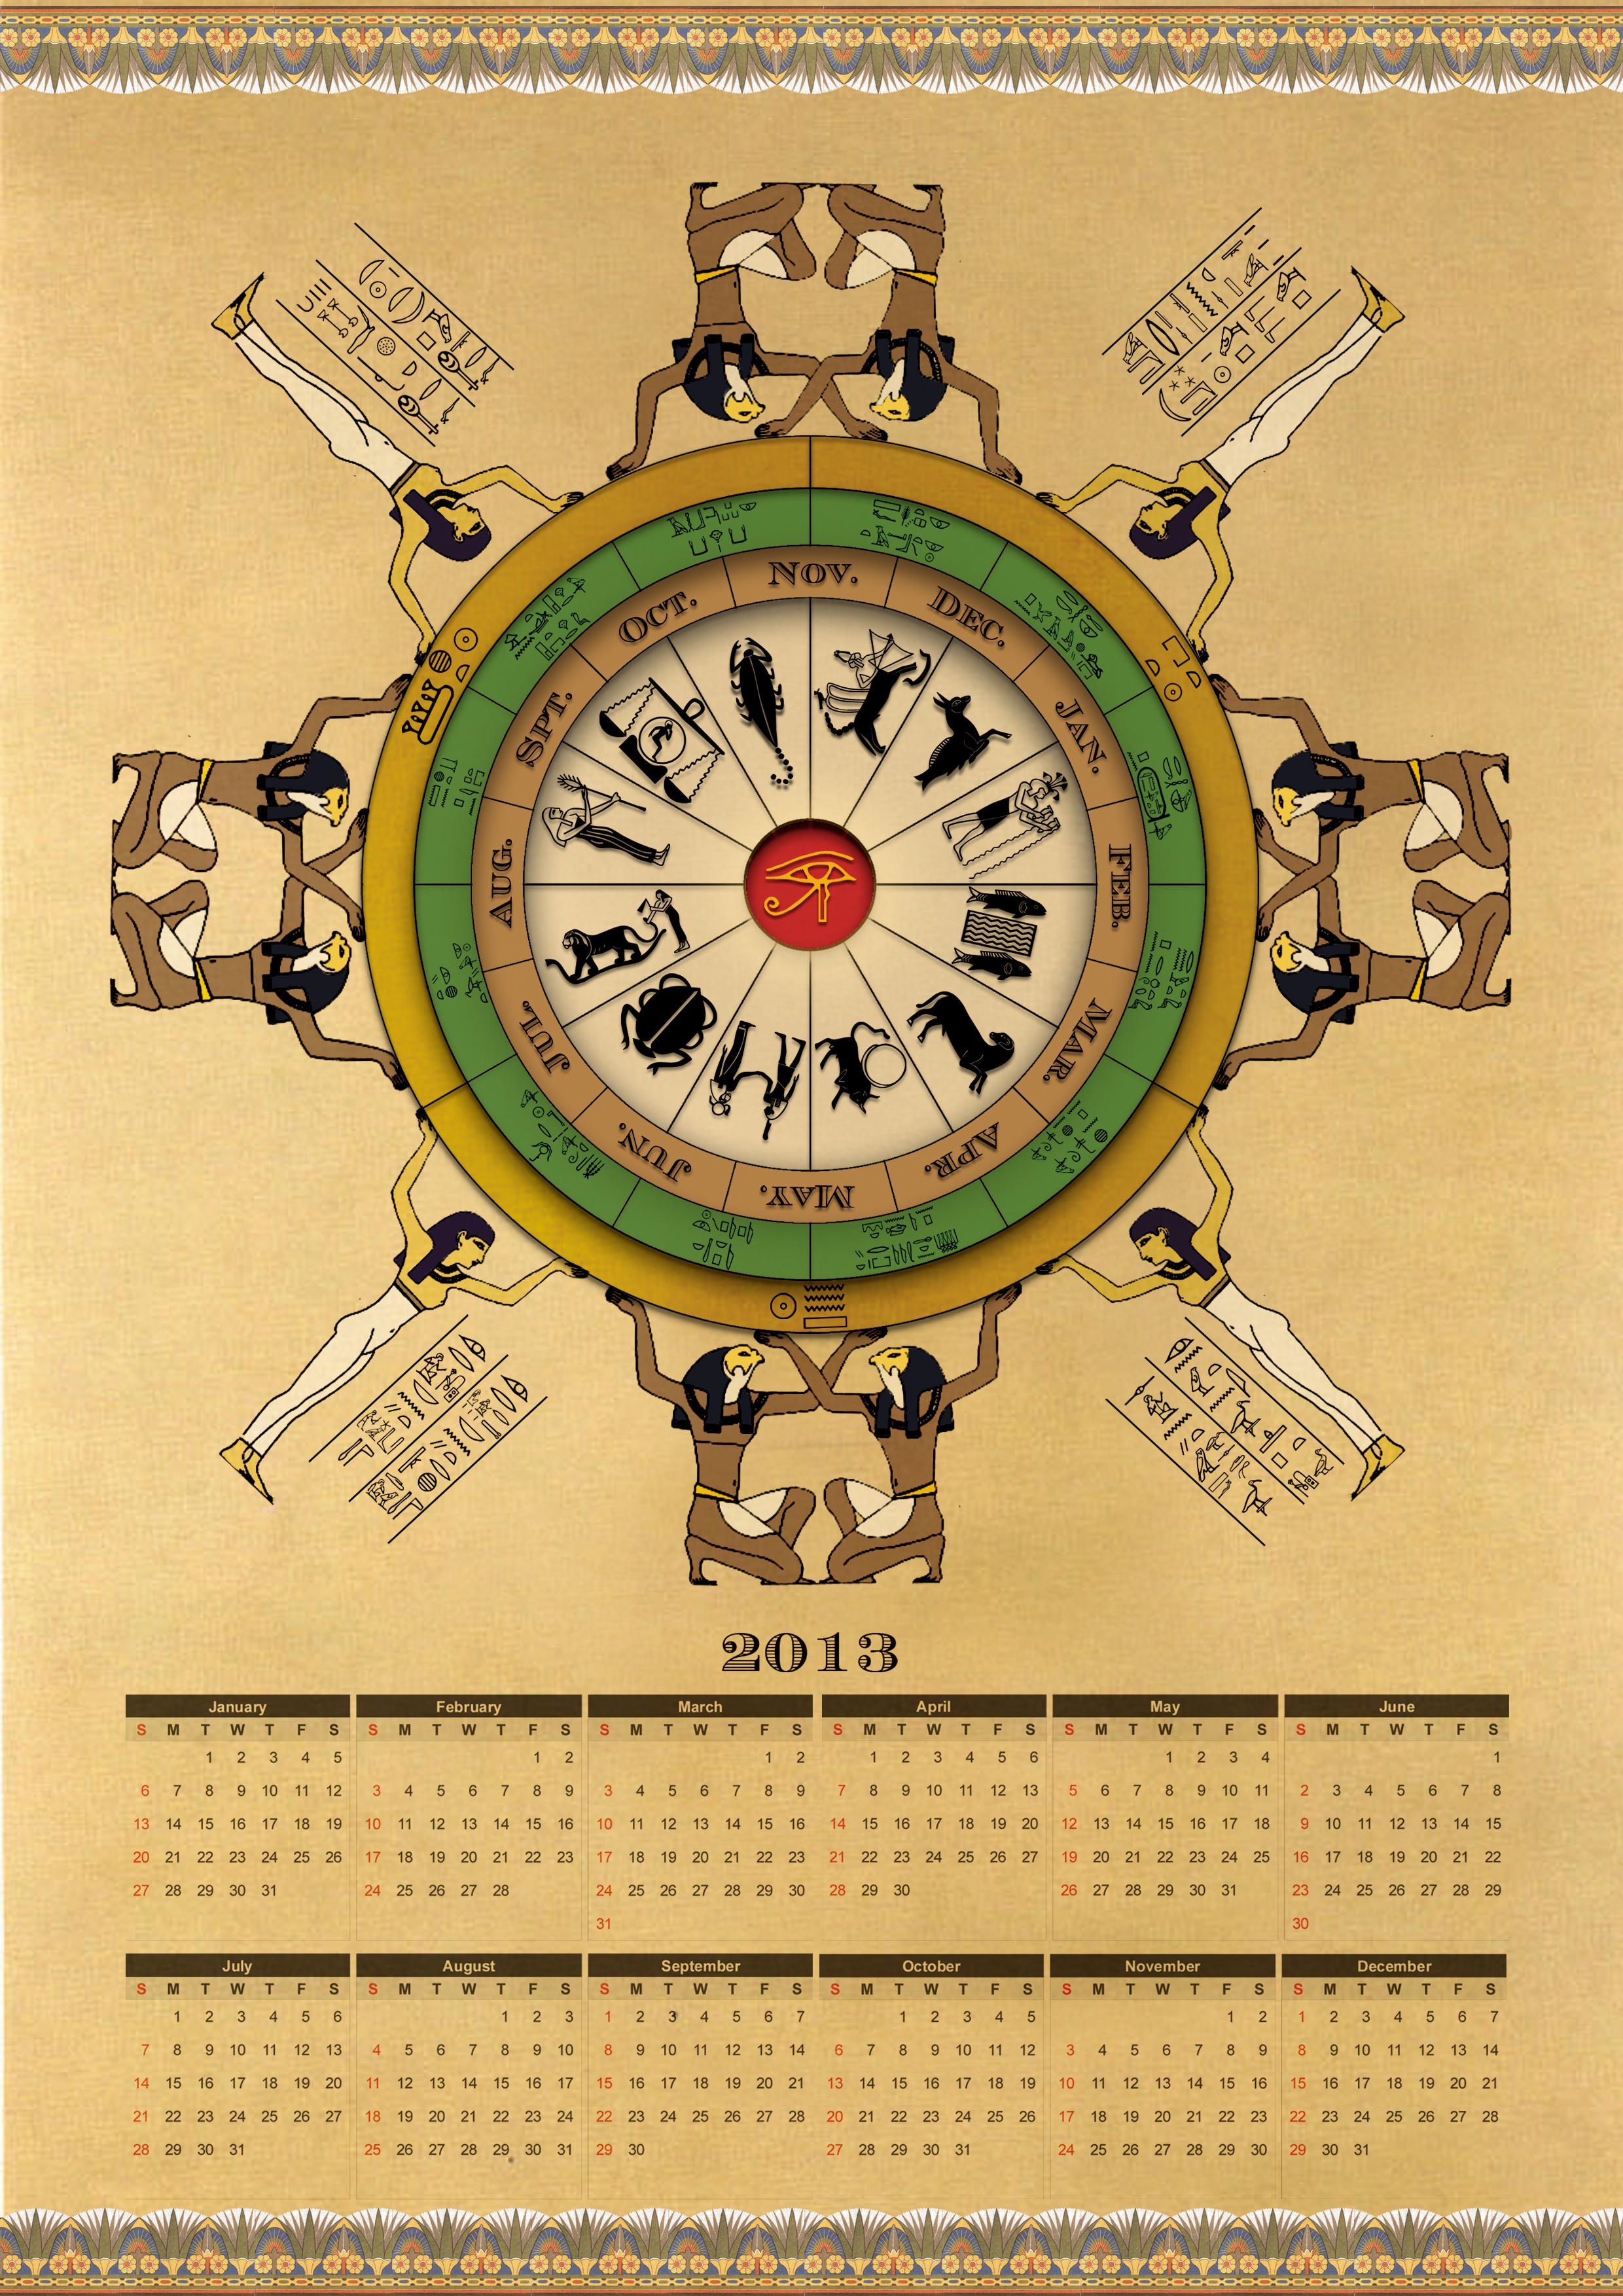 Ancient Egyptian Calendar for 2013 by Thothhotep